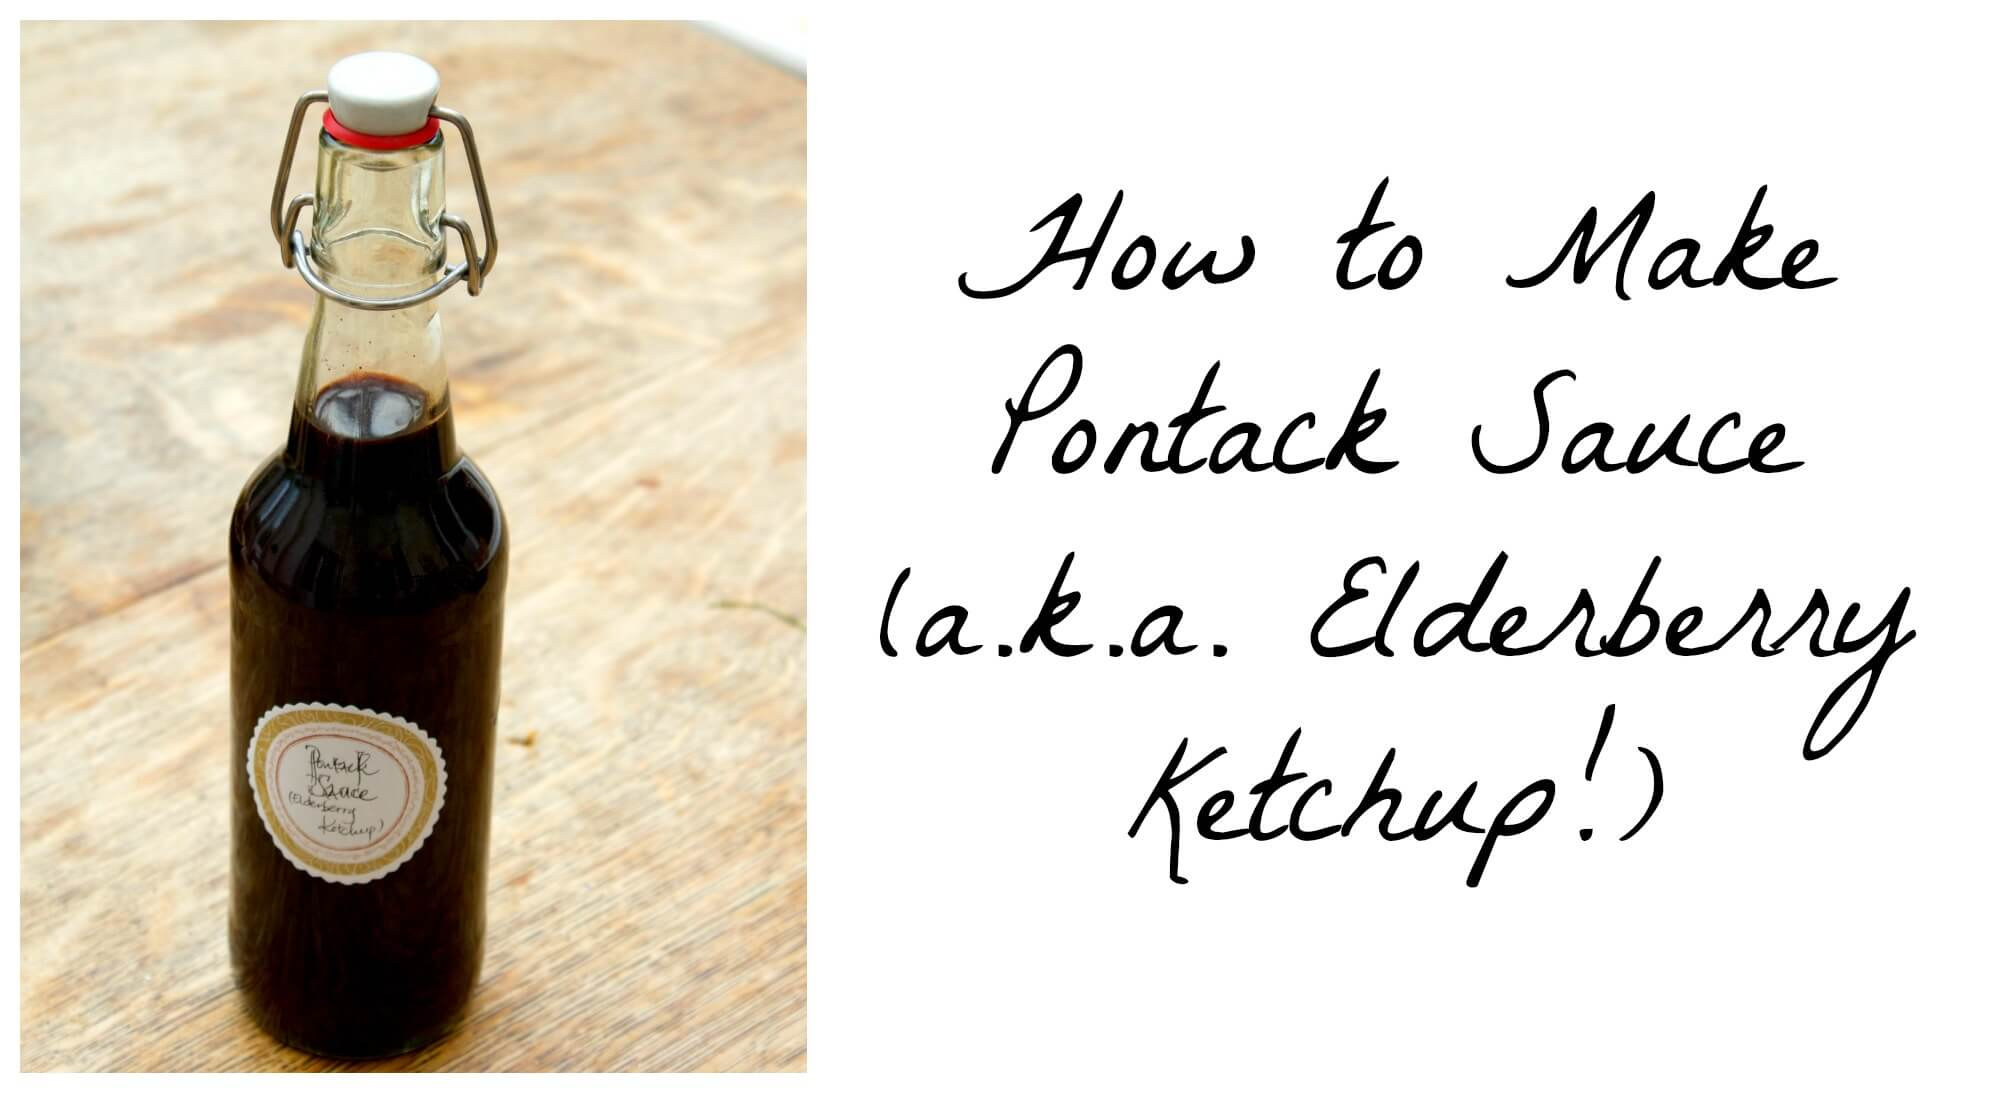 Making Pontack Sauce (Elderberry Ketchup)